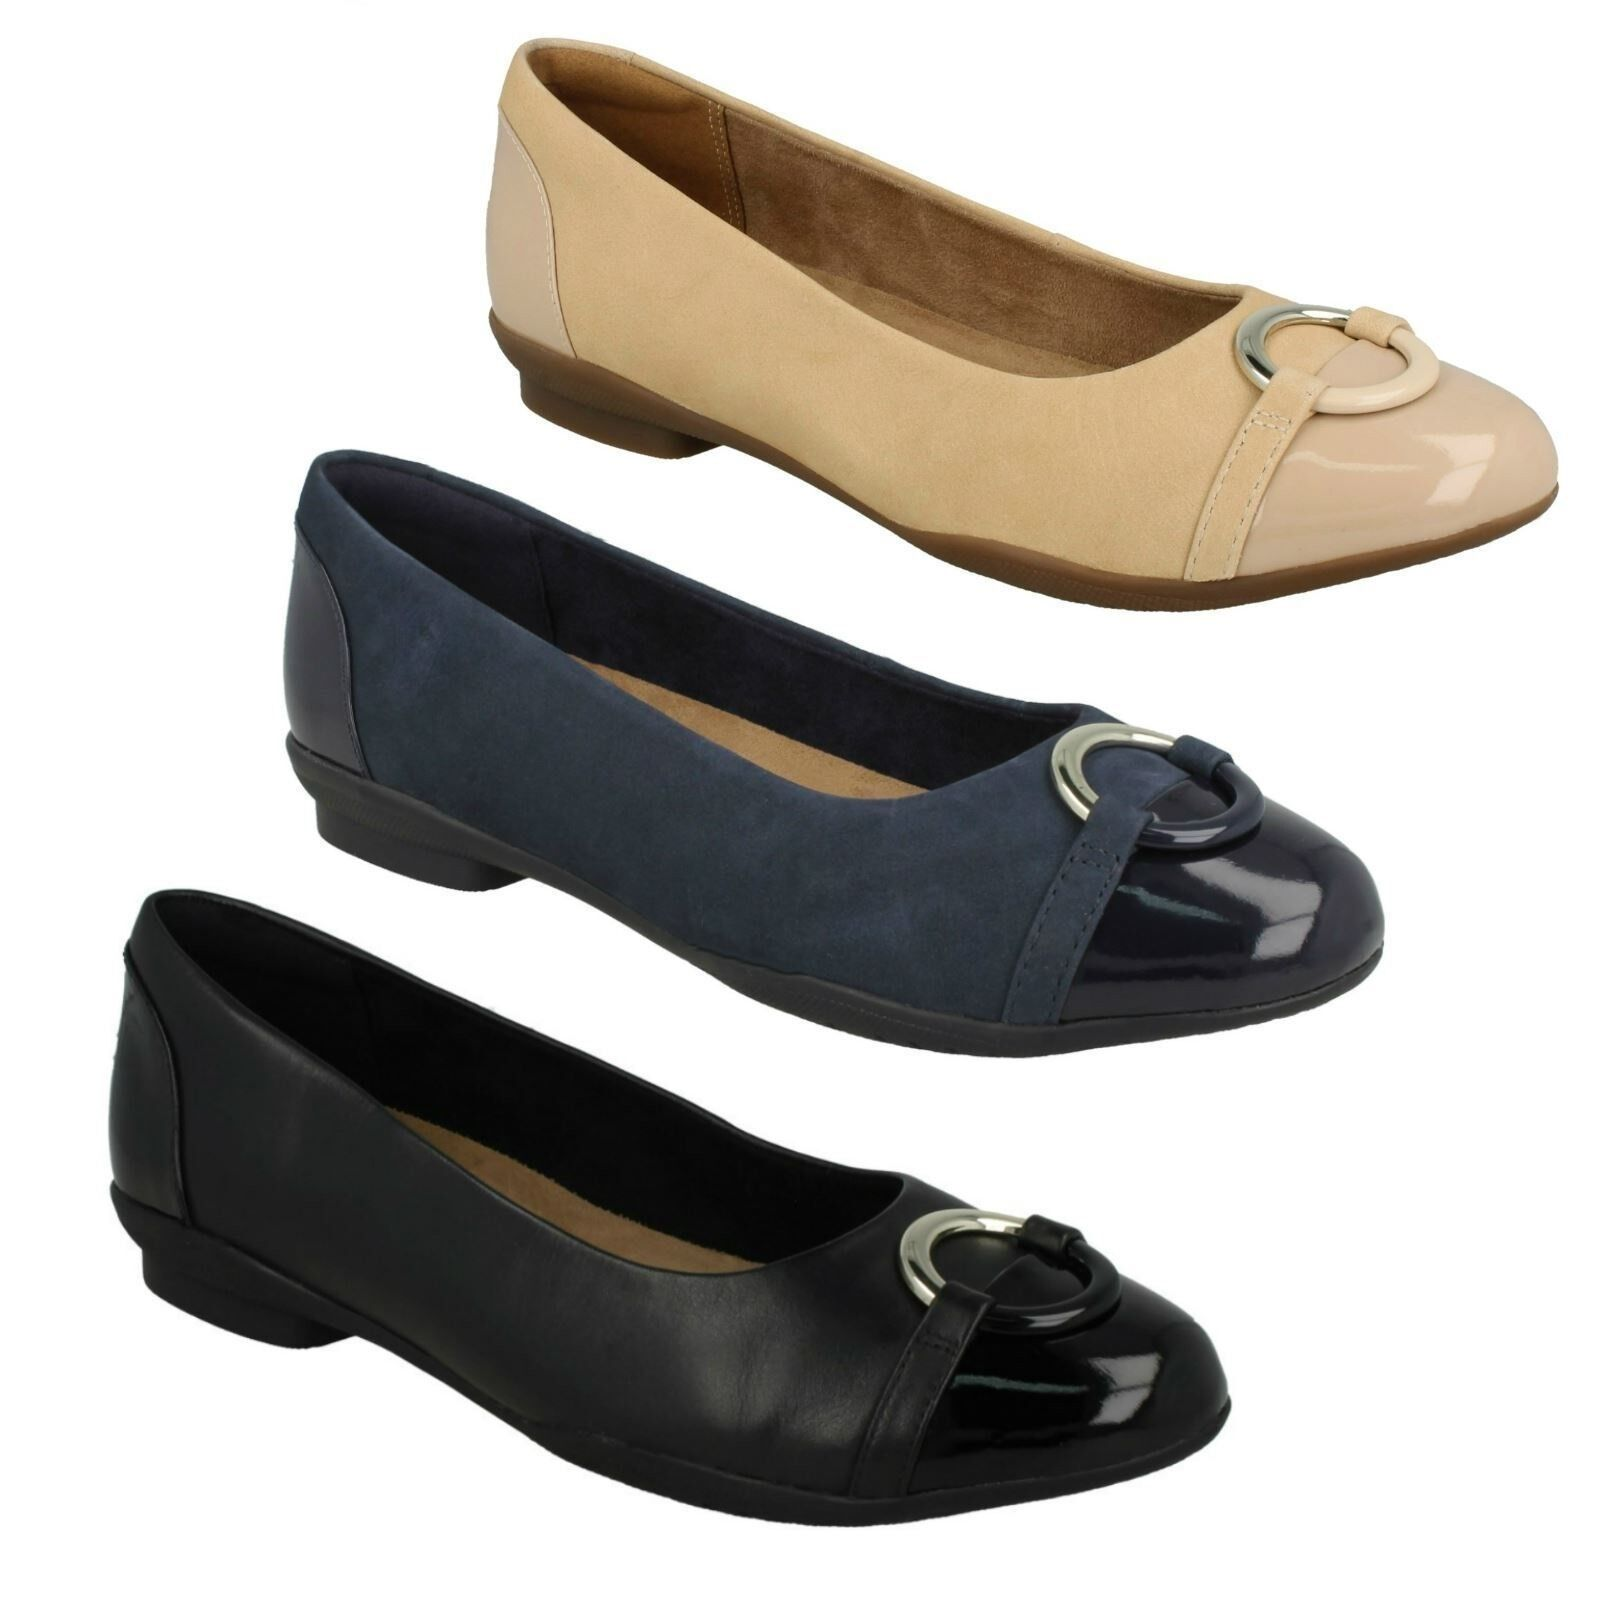 LADIES CLARKS UNSTRUCTURED LEATHER SHOES SLIP ON FLAT BALLERINA SHOES LEATHER NEENAH VINE 2da318